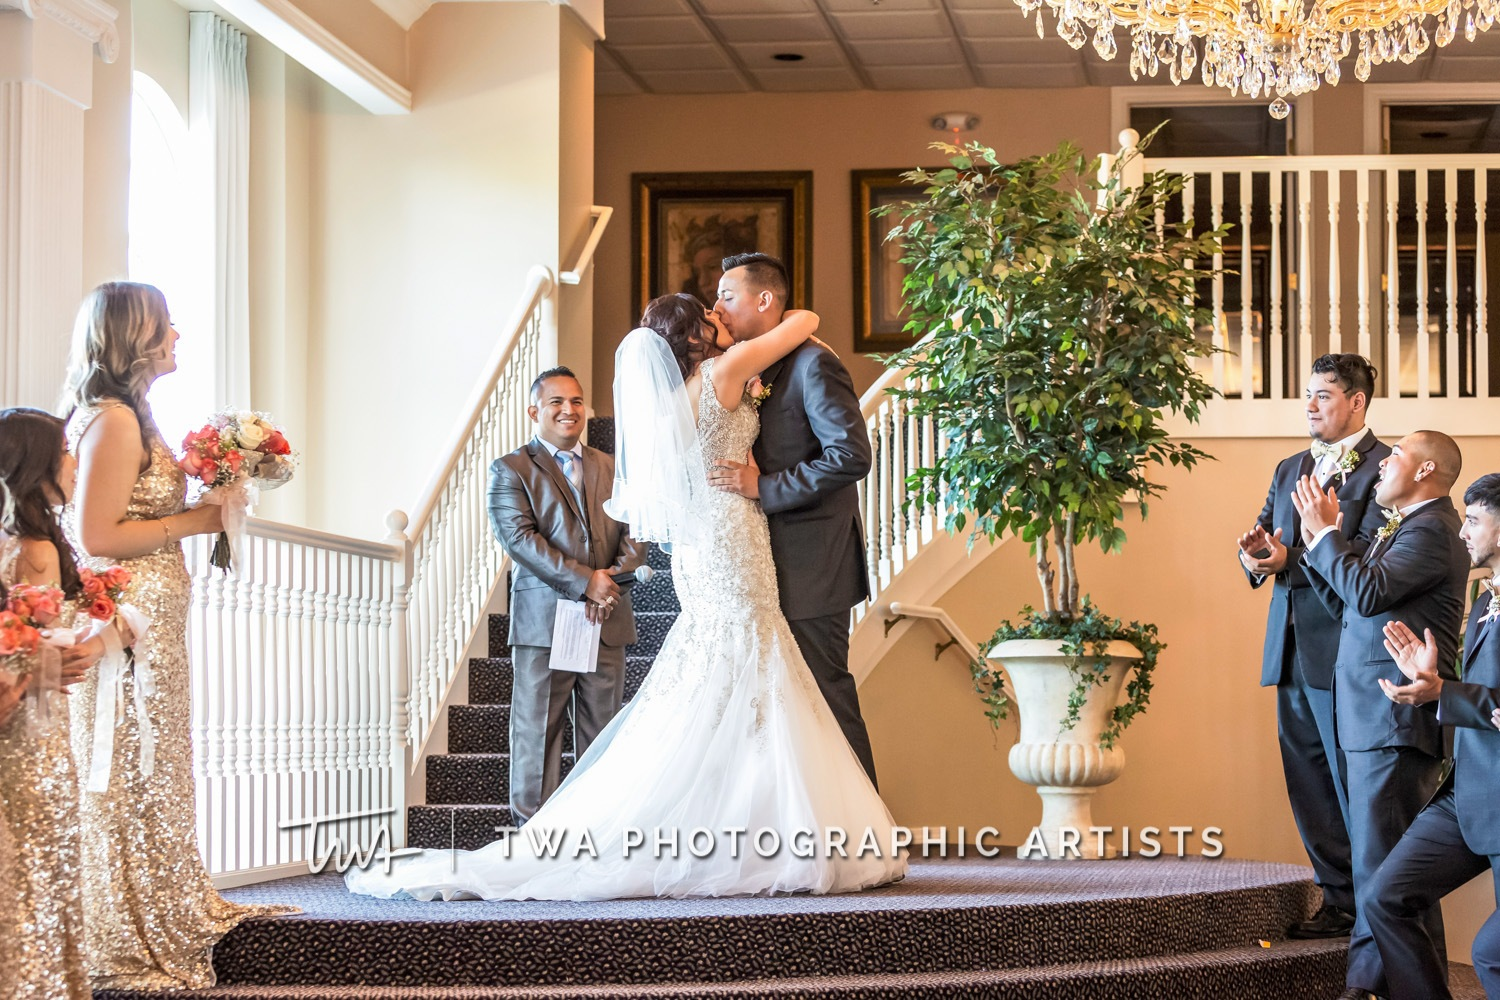 Chicago-Wedding-Photographer-TWA-Photographic-Artists-Abbington-Banquets_Carrillo_Carbajal_MiC-0580